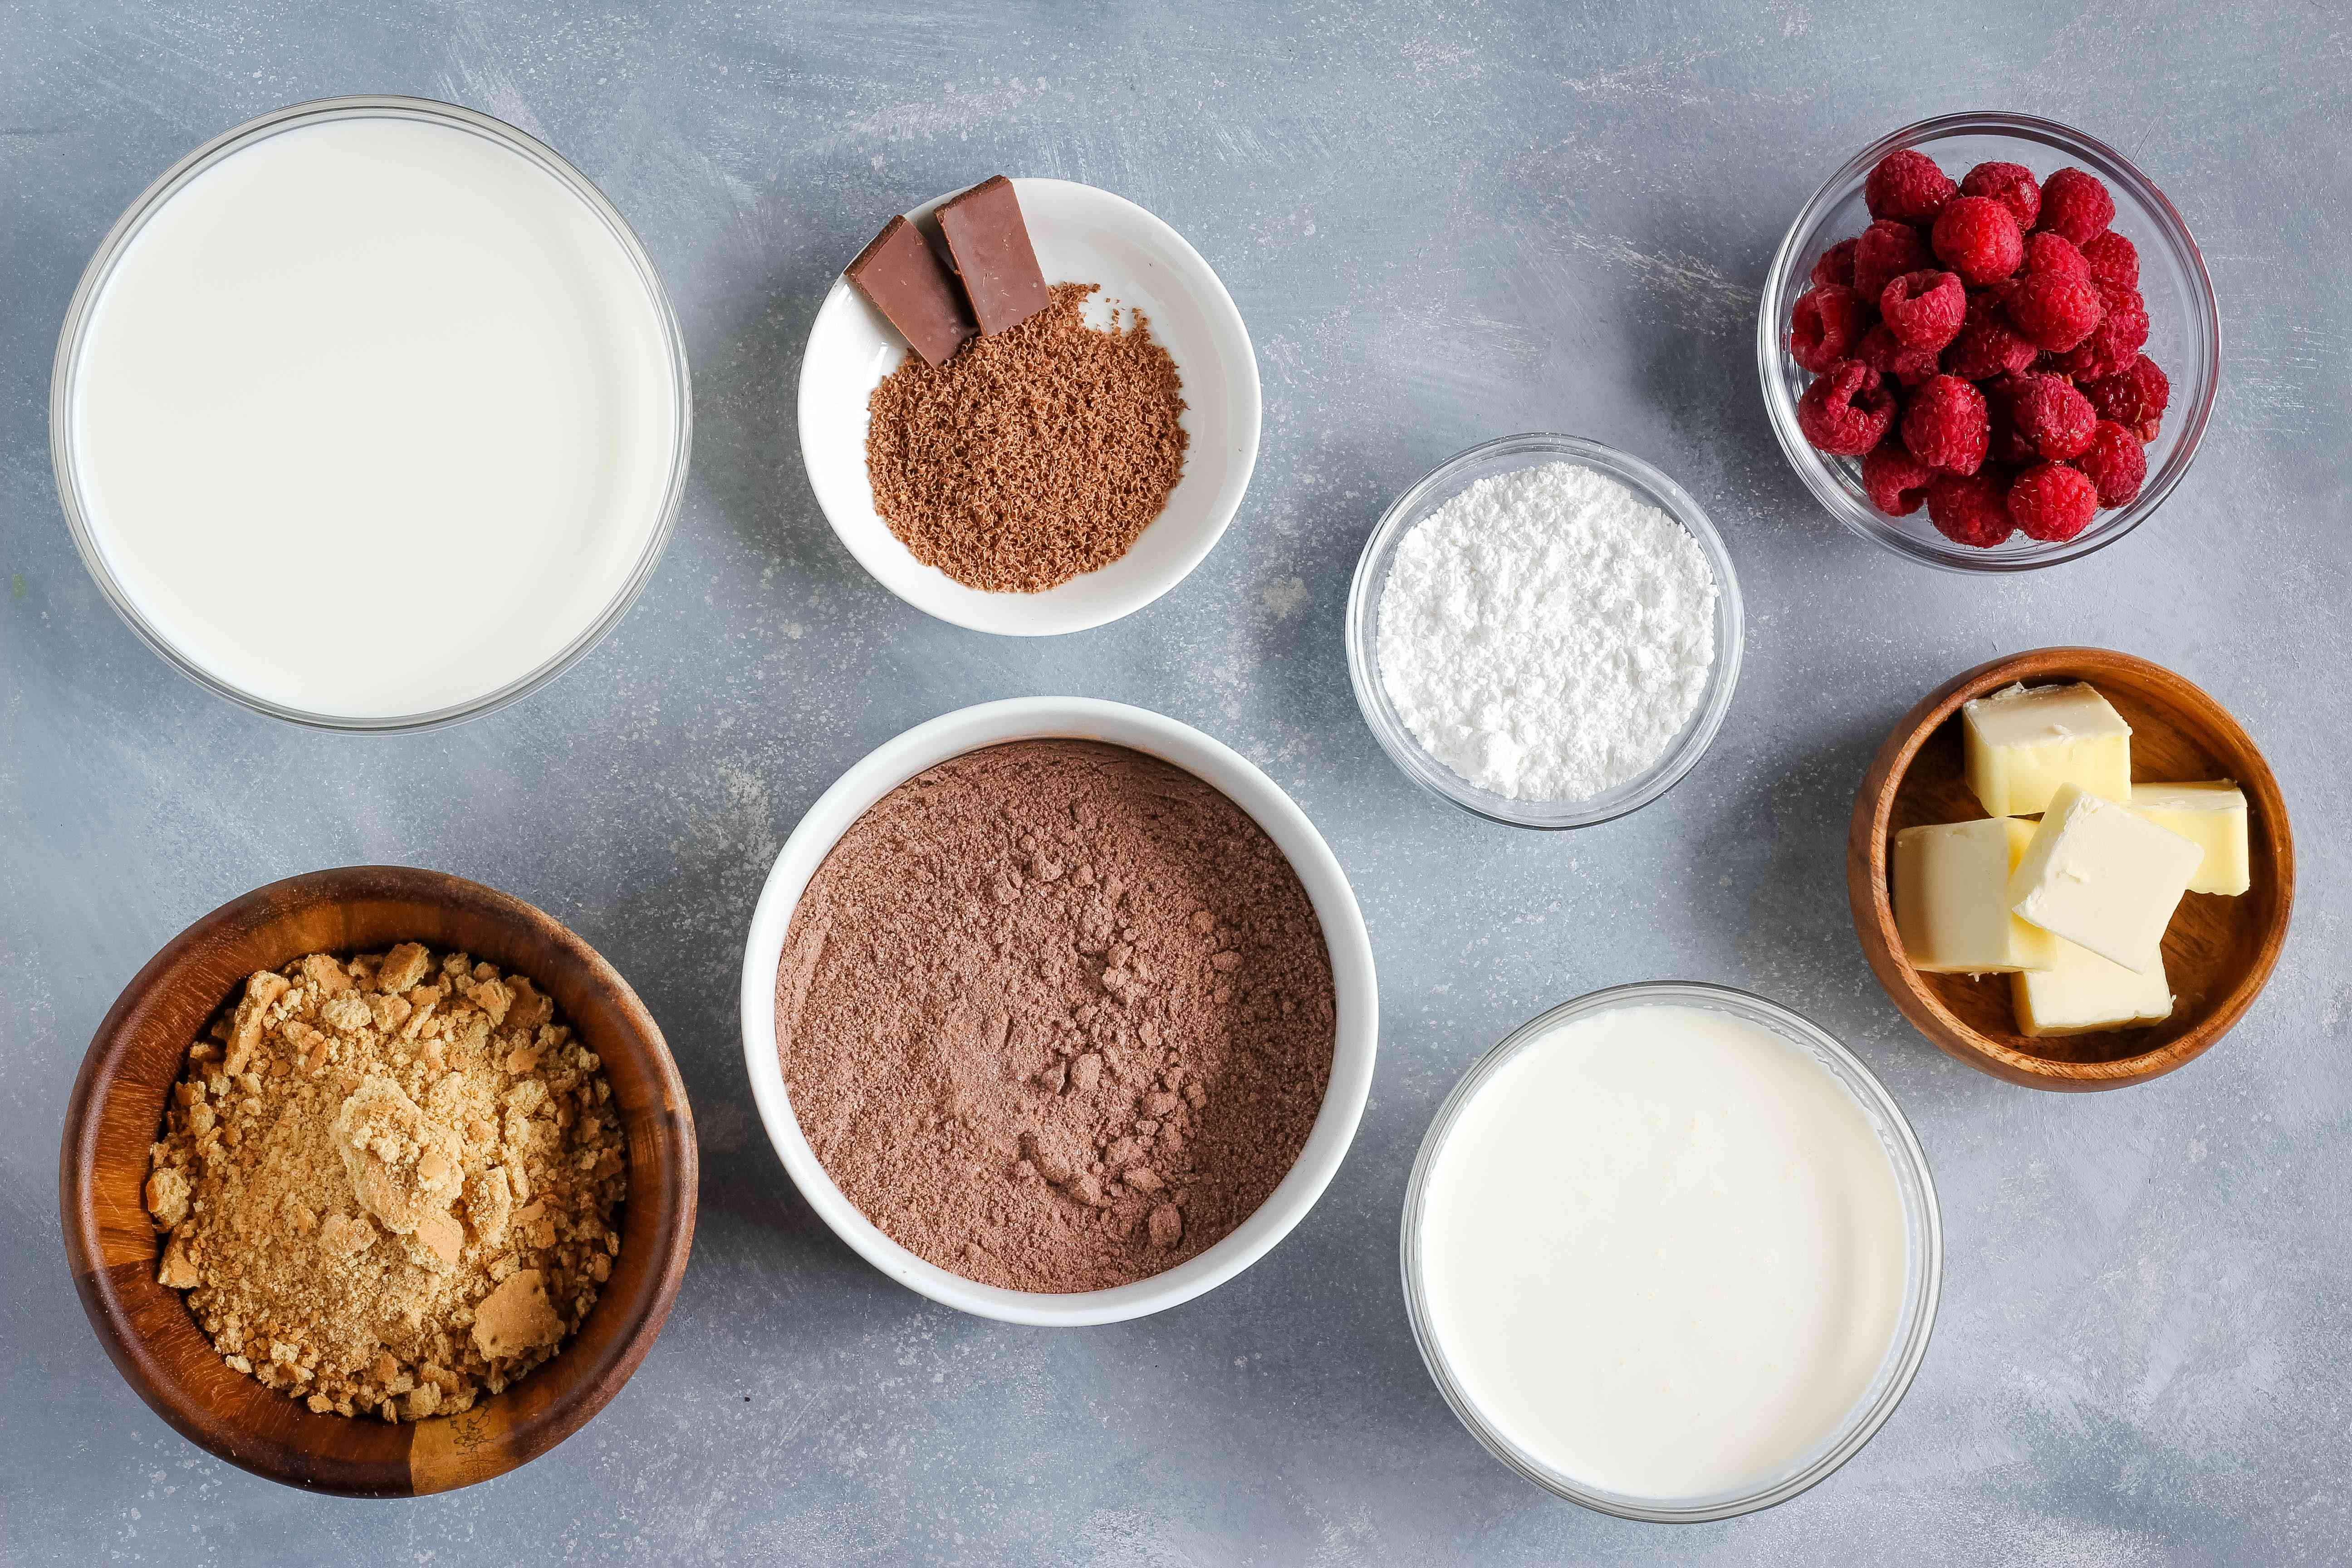 Ingredients for easy chocolate pudding pie recipe